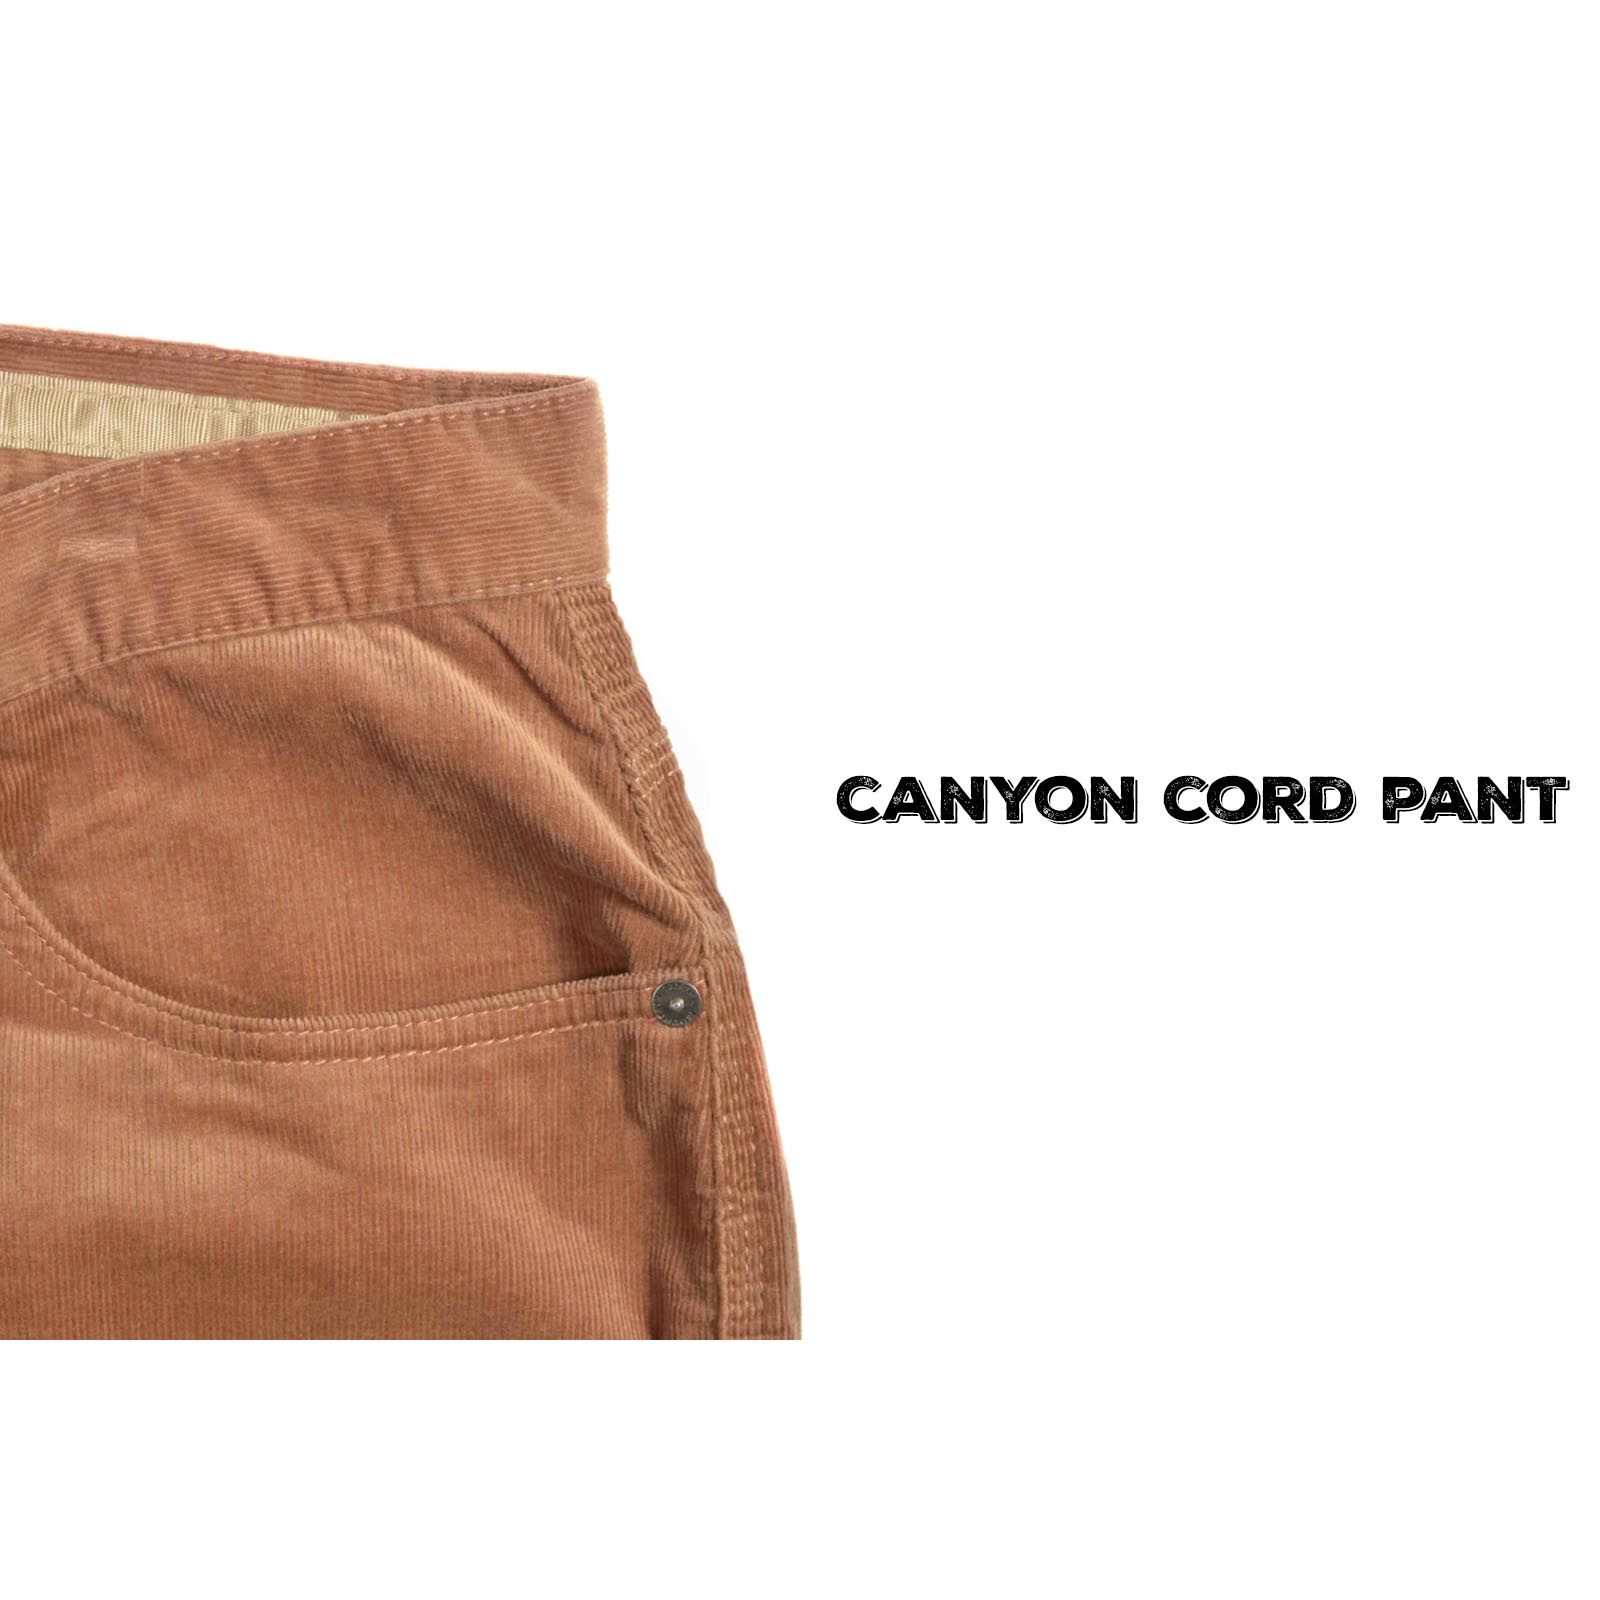 Canyon Cord Detail